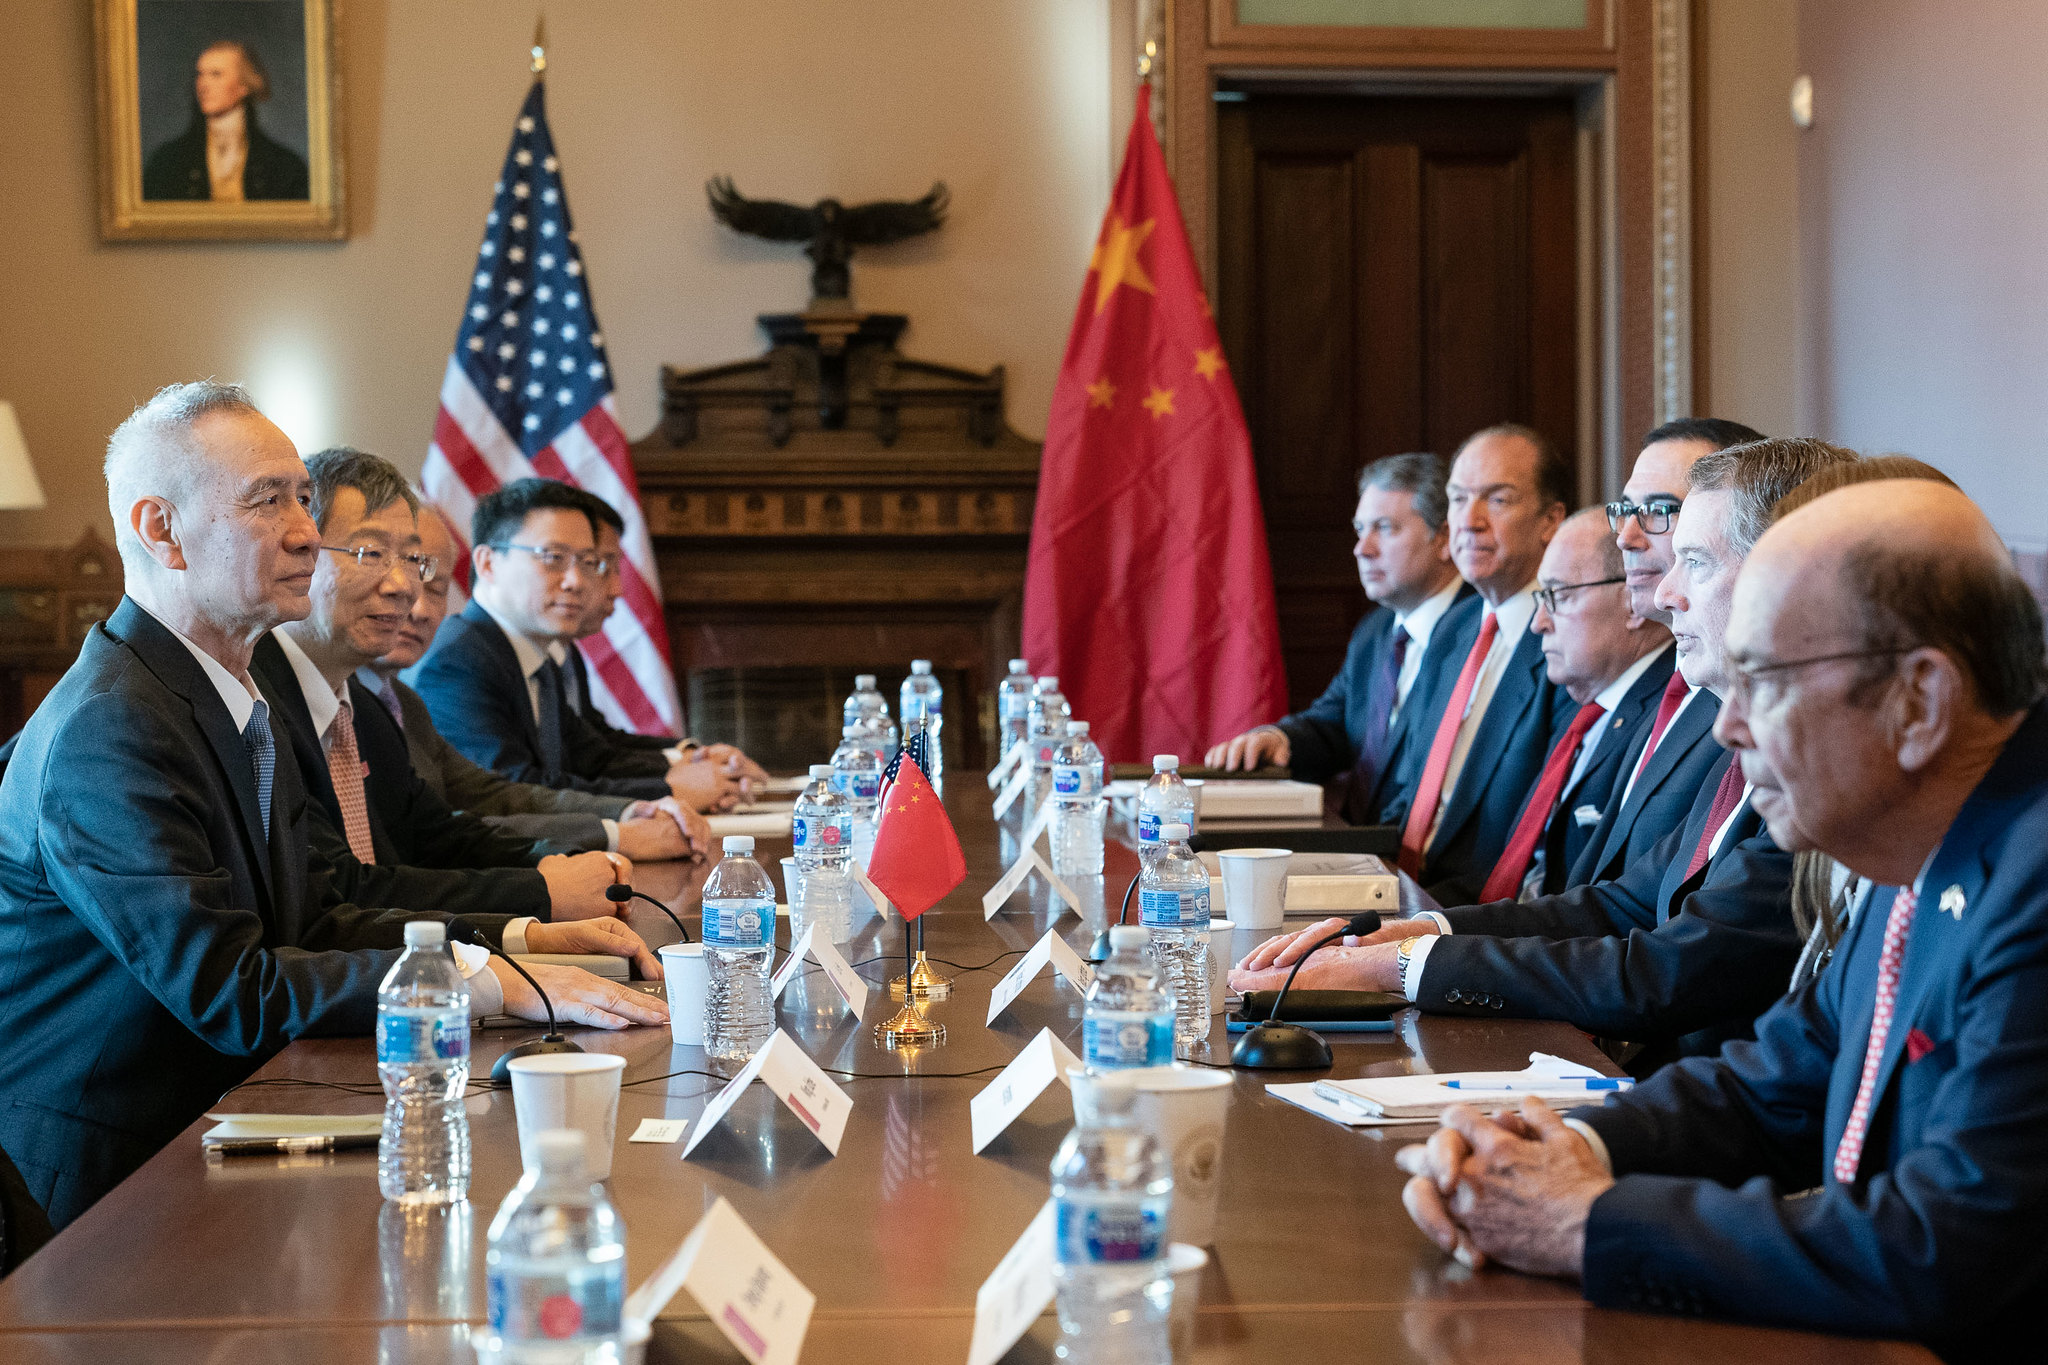 COVID-19 Will Make the US-China Great Power Dynamics More ...